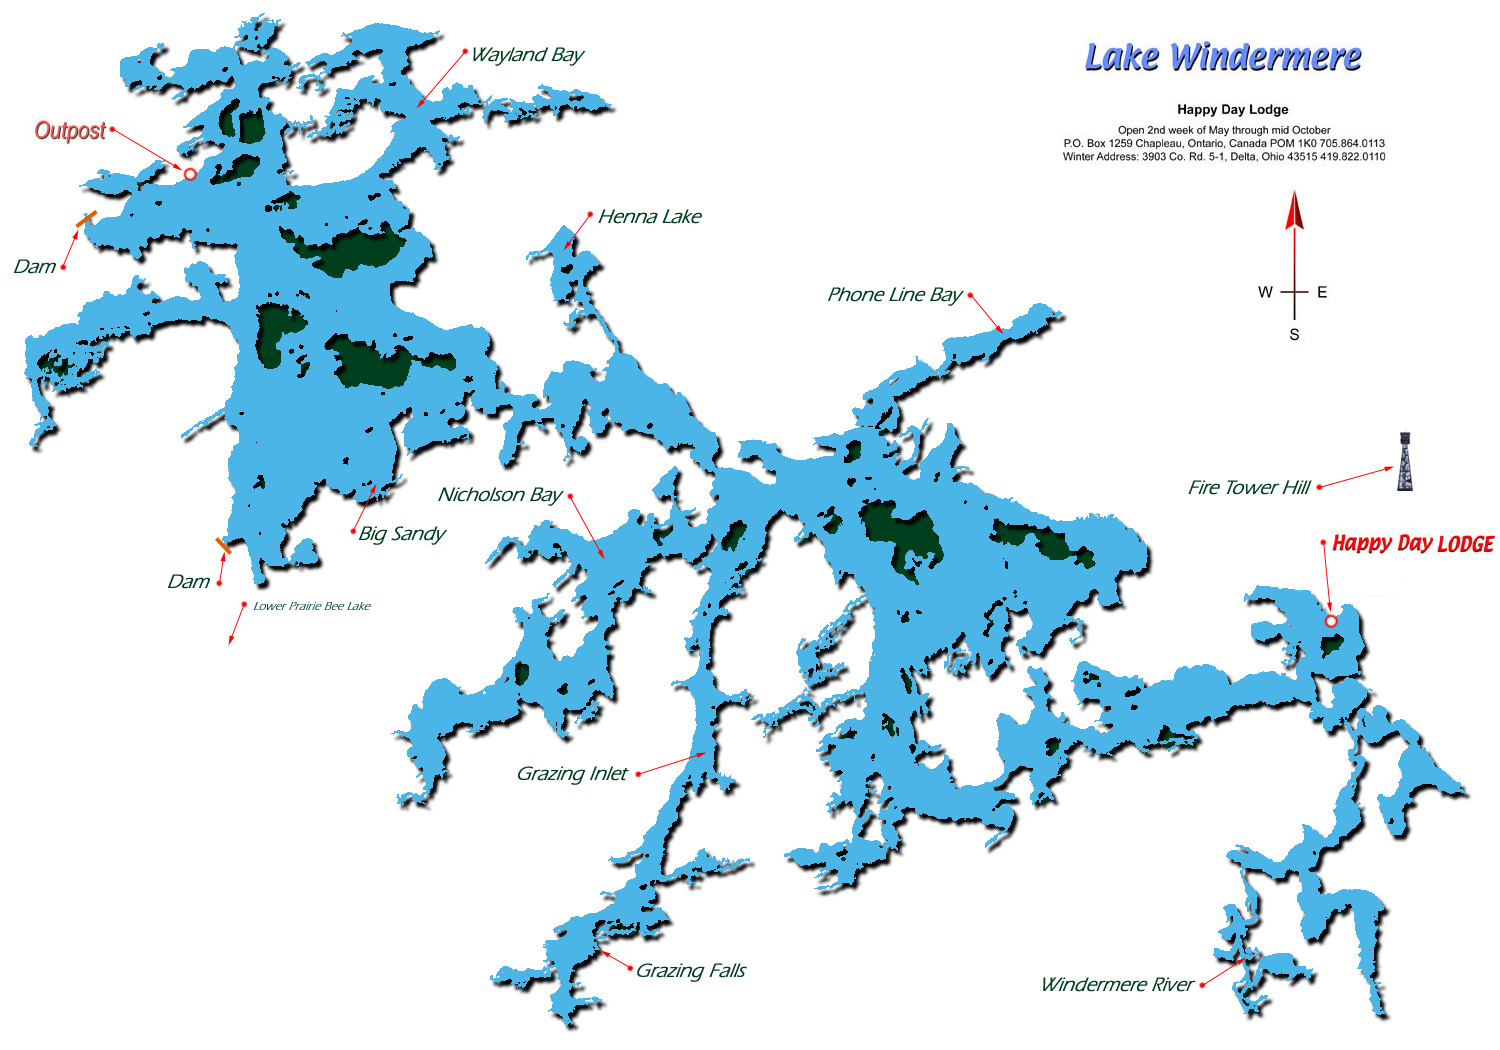 Map of Lake Windermere